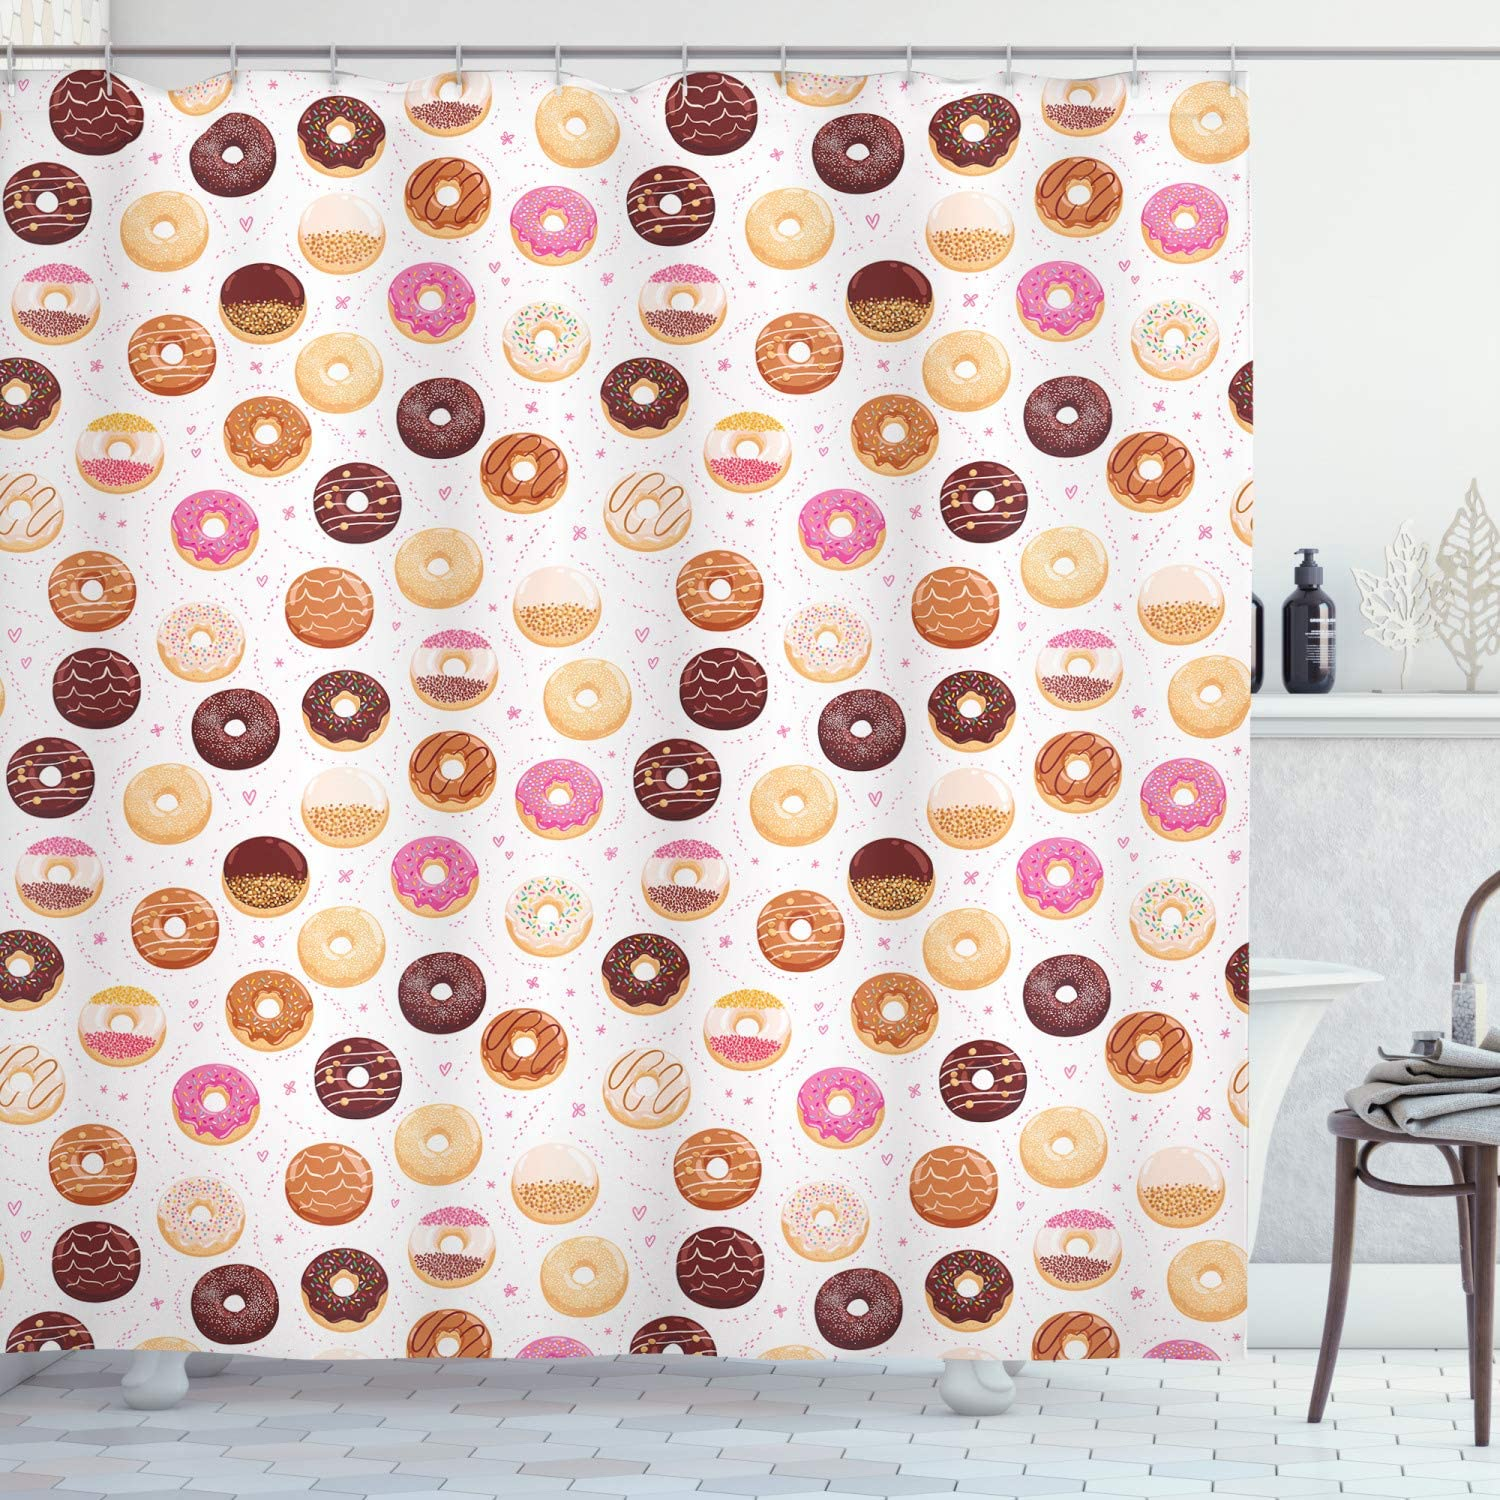 Ambesonne Food Shower Curtain, Donuts and Little Hearts Pattern Colorful Yummy Delicious Desserts Print, Cloth Fabric Bathroom Decor Set with Hooks, 70